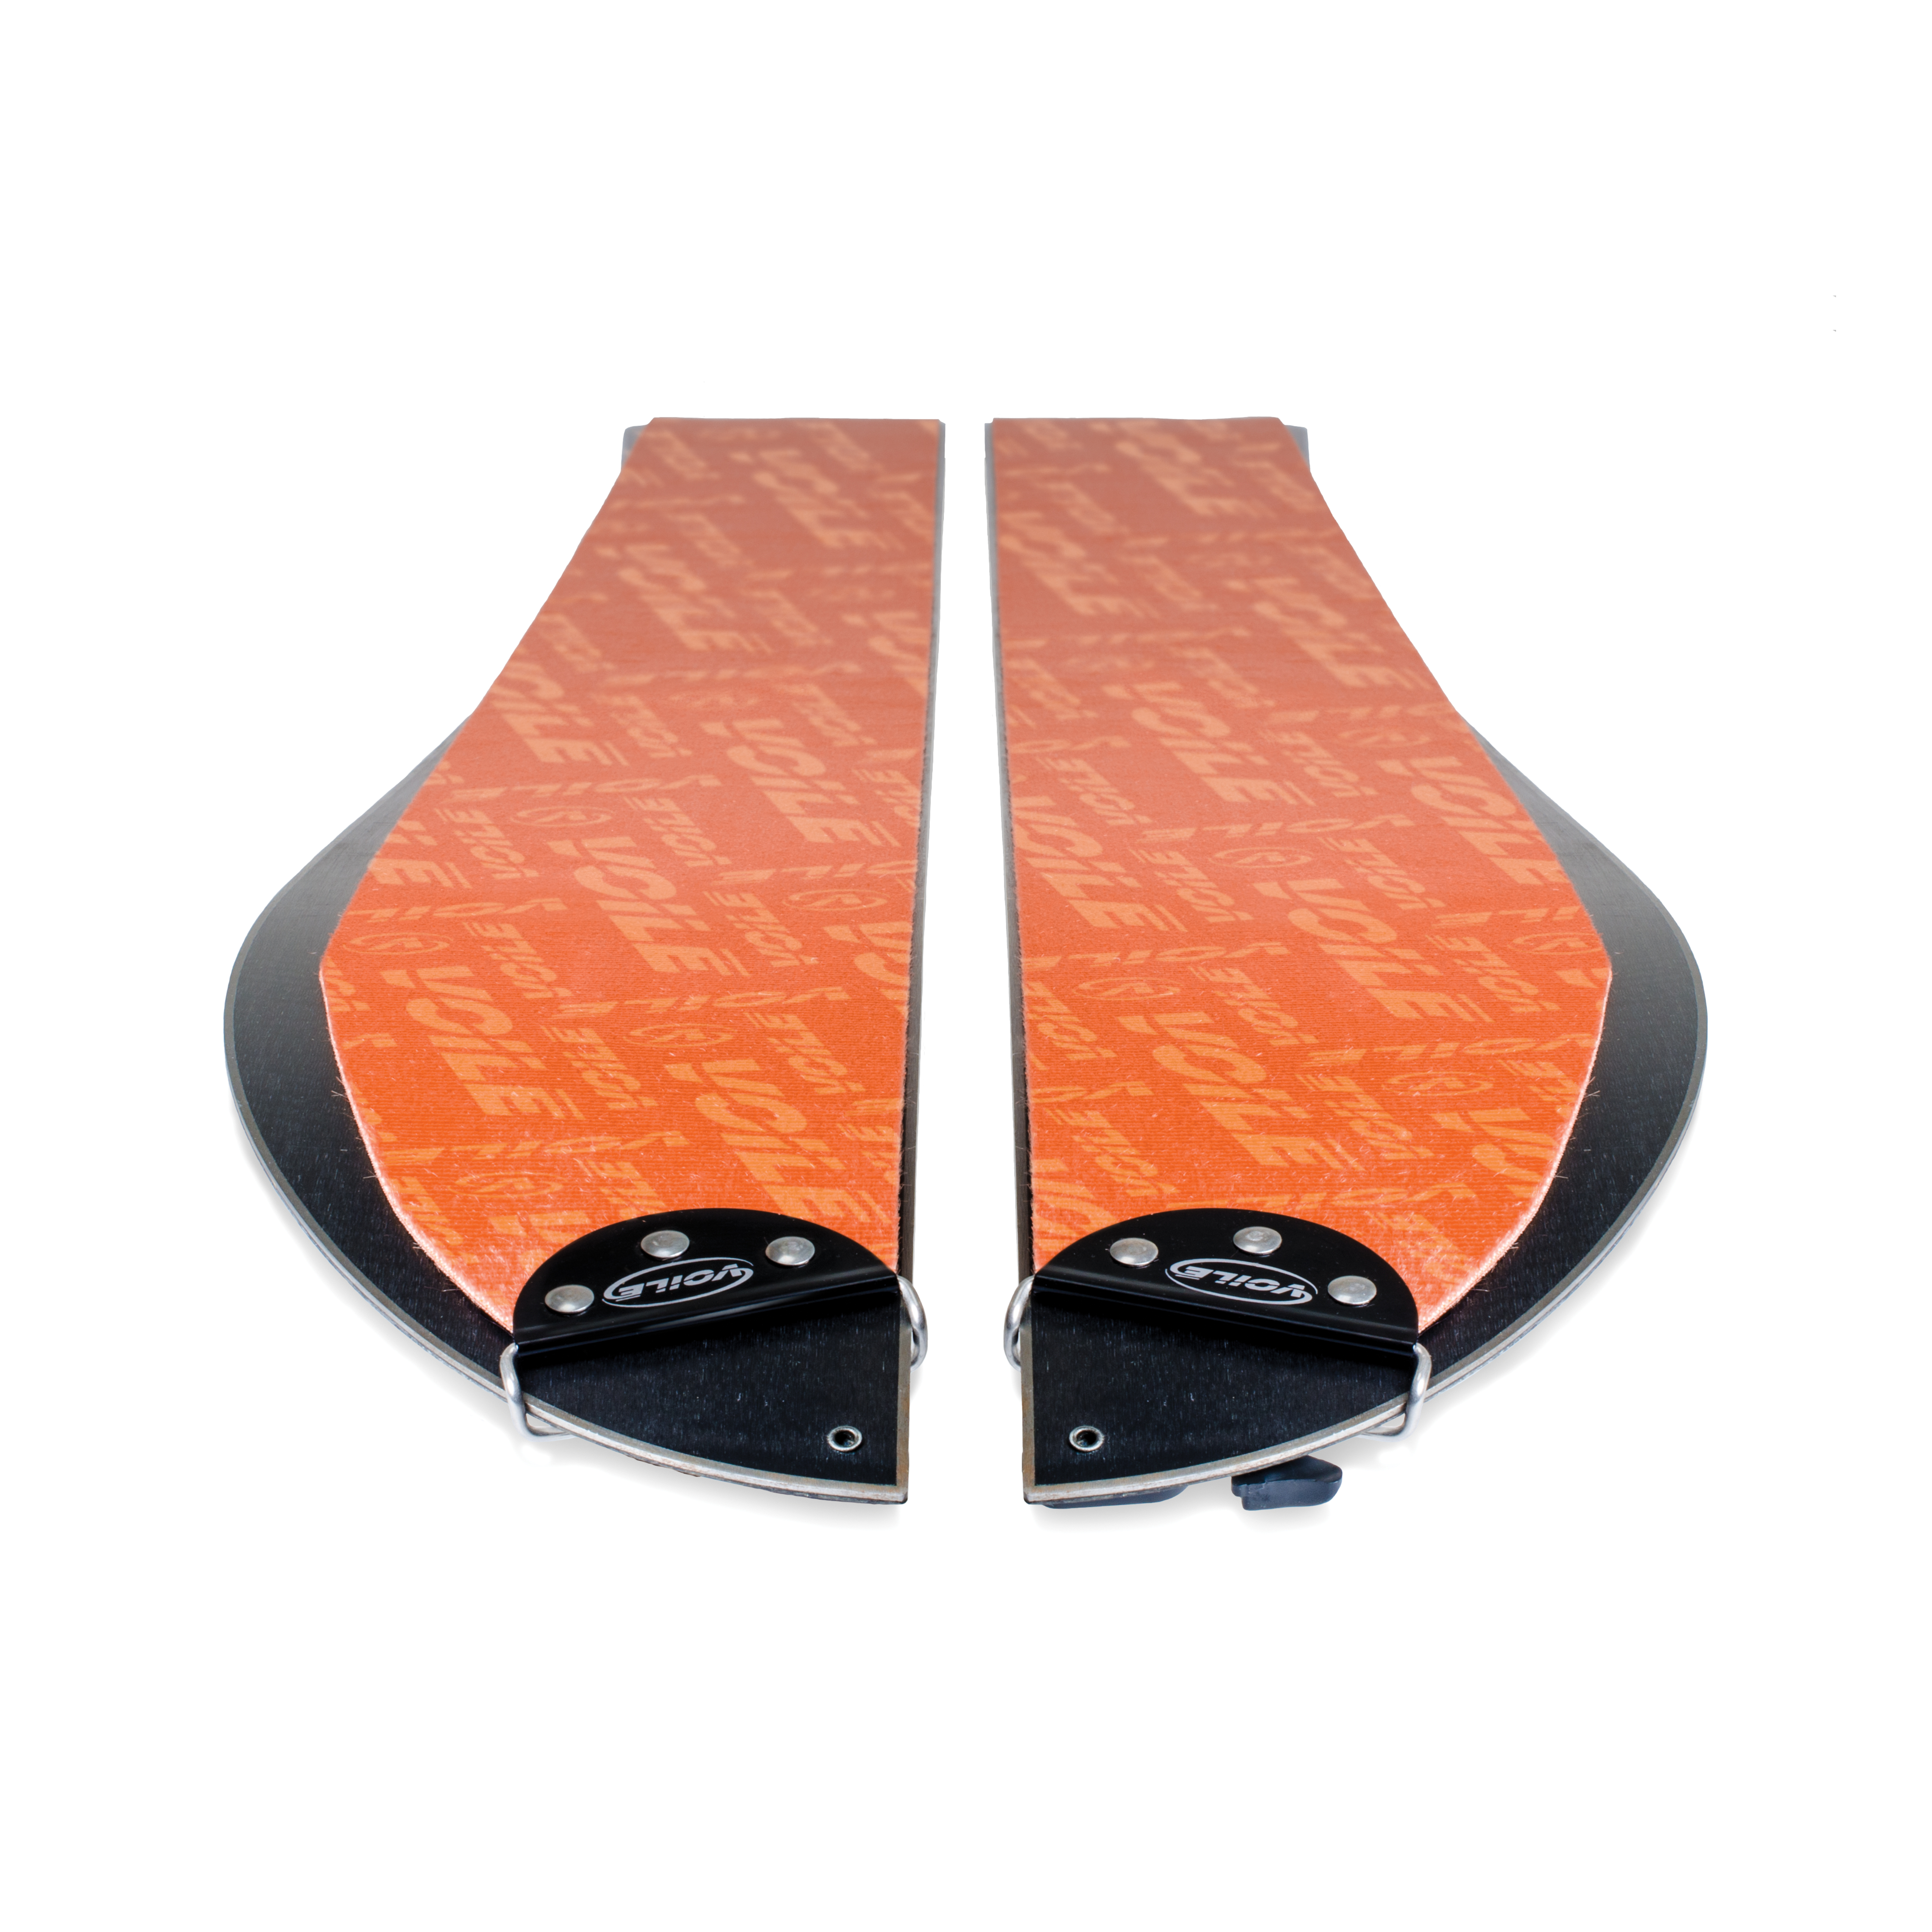 Voile Splitboard Skins Tail-less: Voile